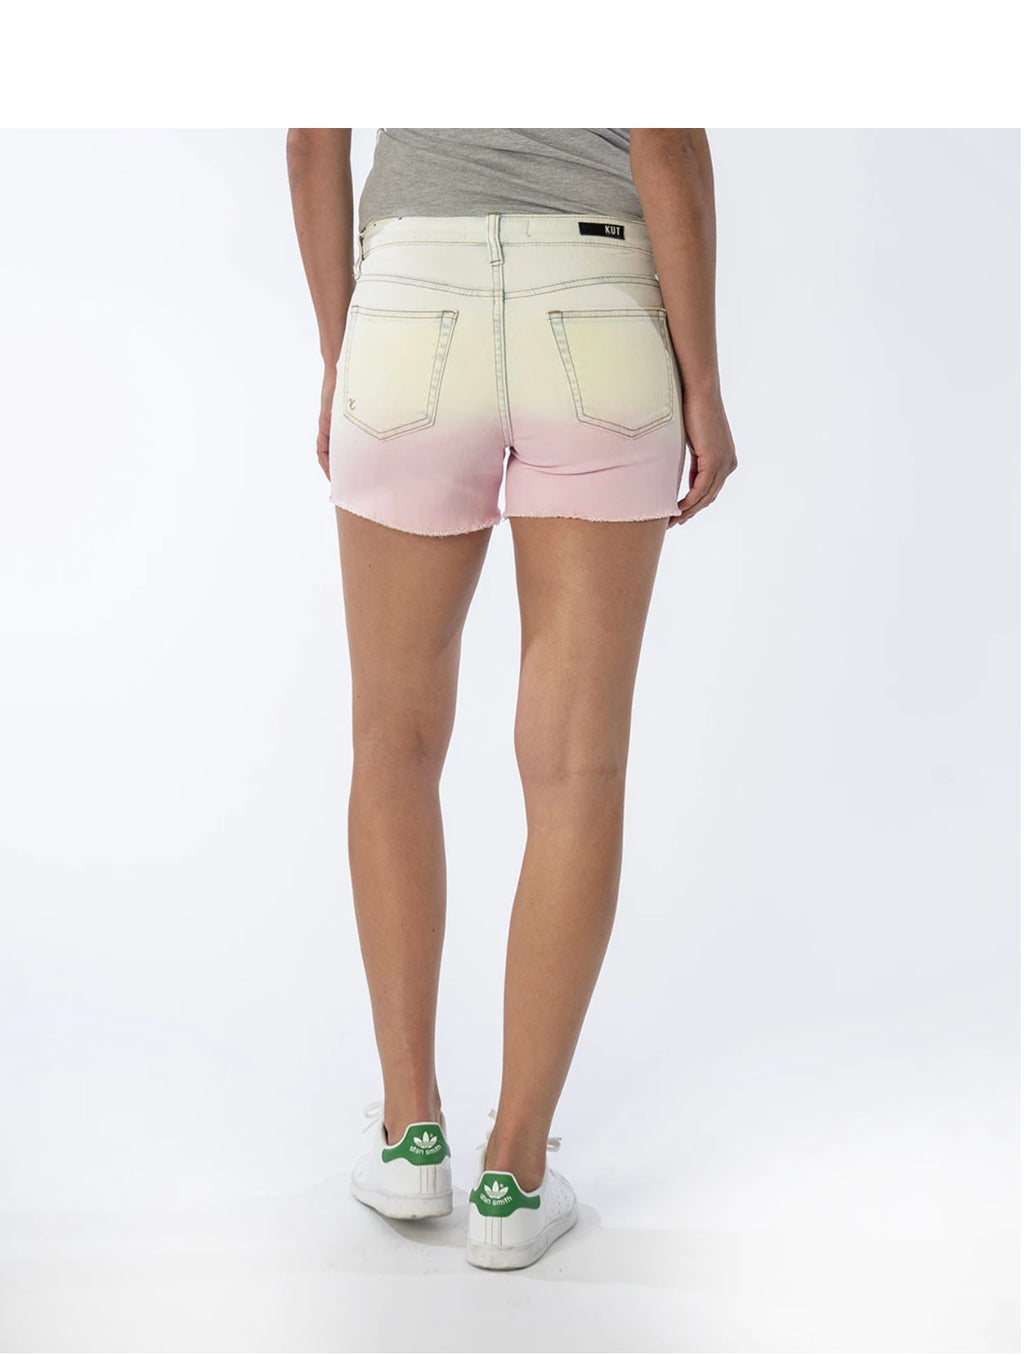 Kut Ombré Gidget Short in Yellow/Pink